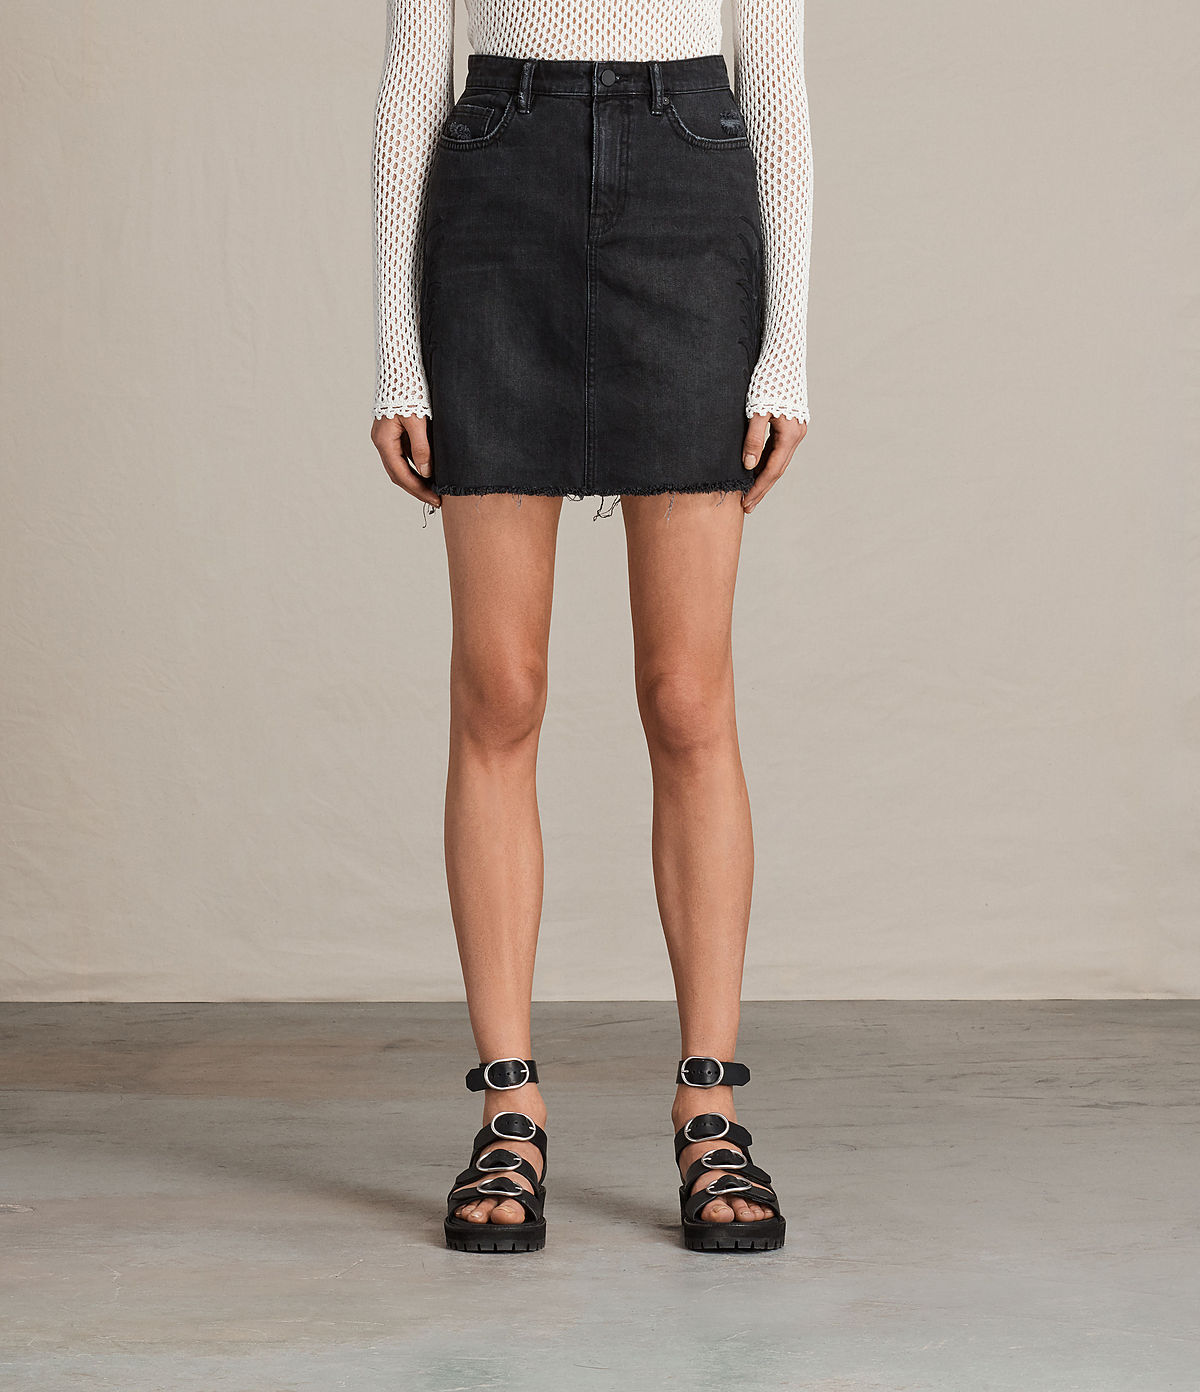 ALLSAINTS UK: Womens Philly Embroidered Denim Skirt (Washed Black)